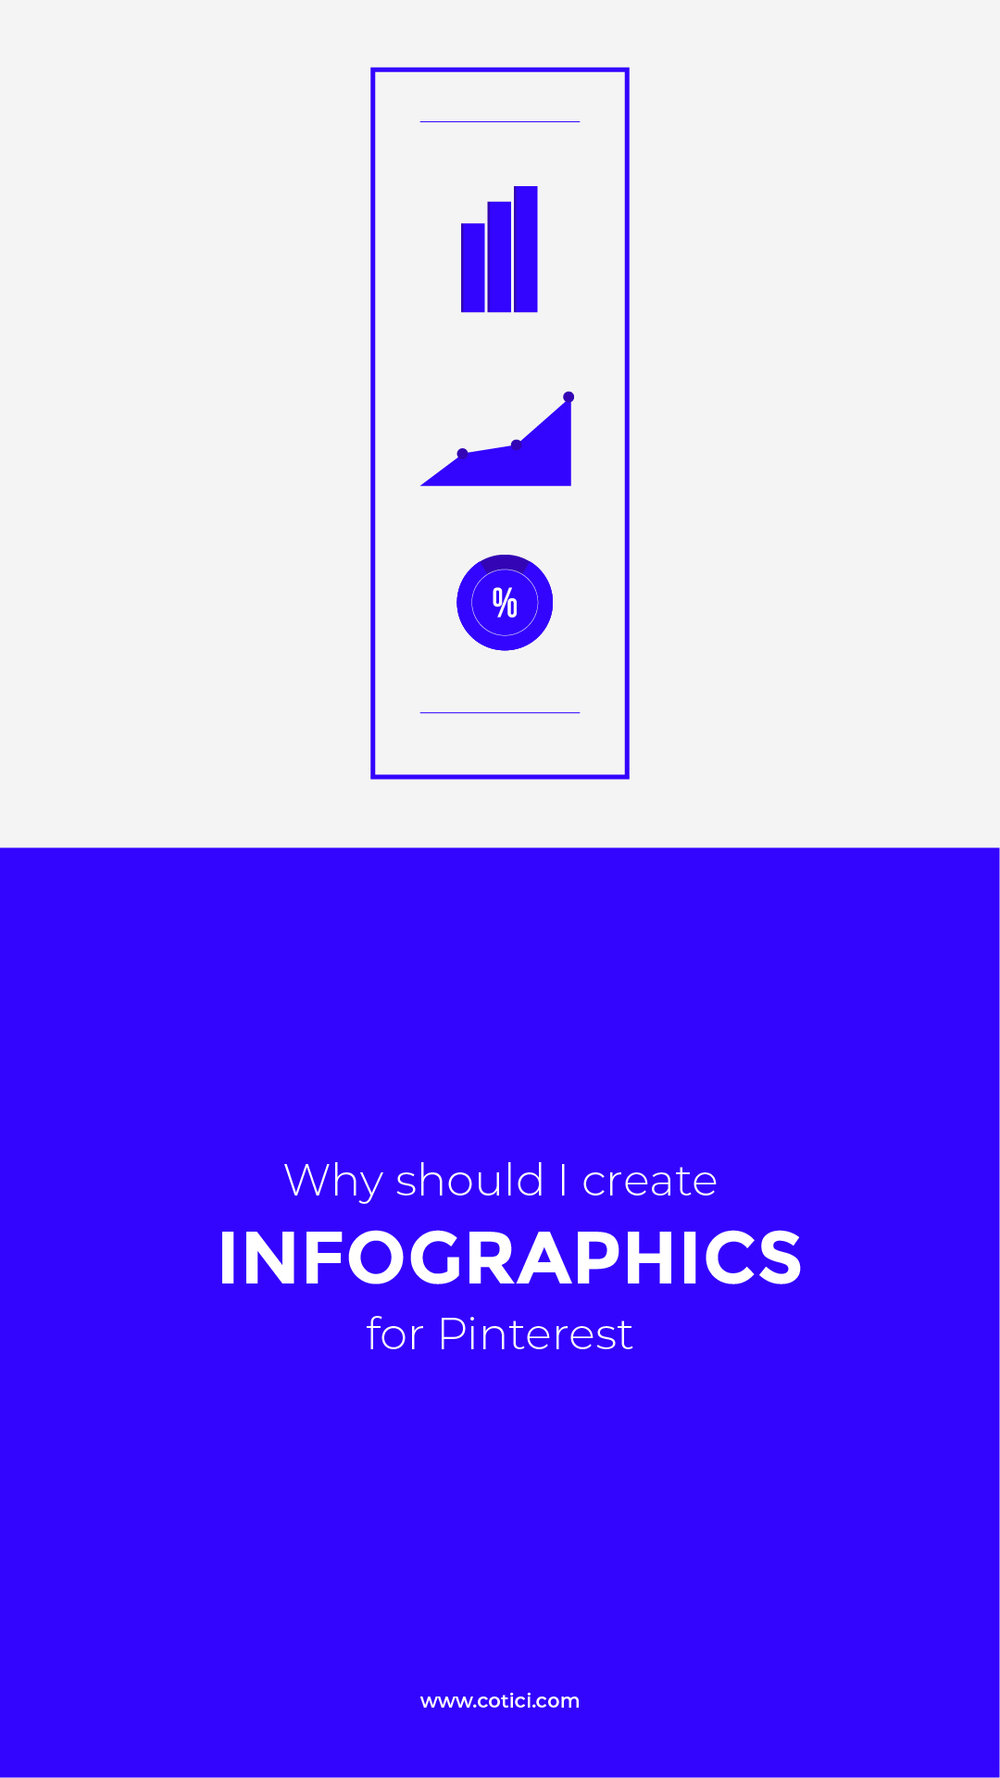 Why should I create infographics for Pinterest.jpg